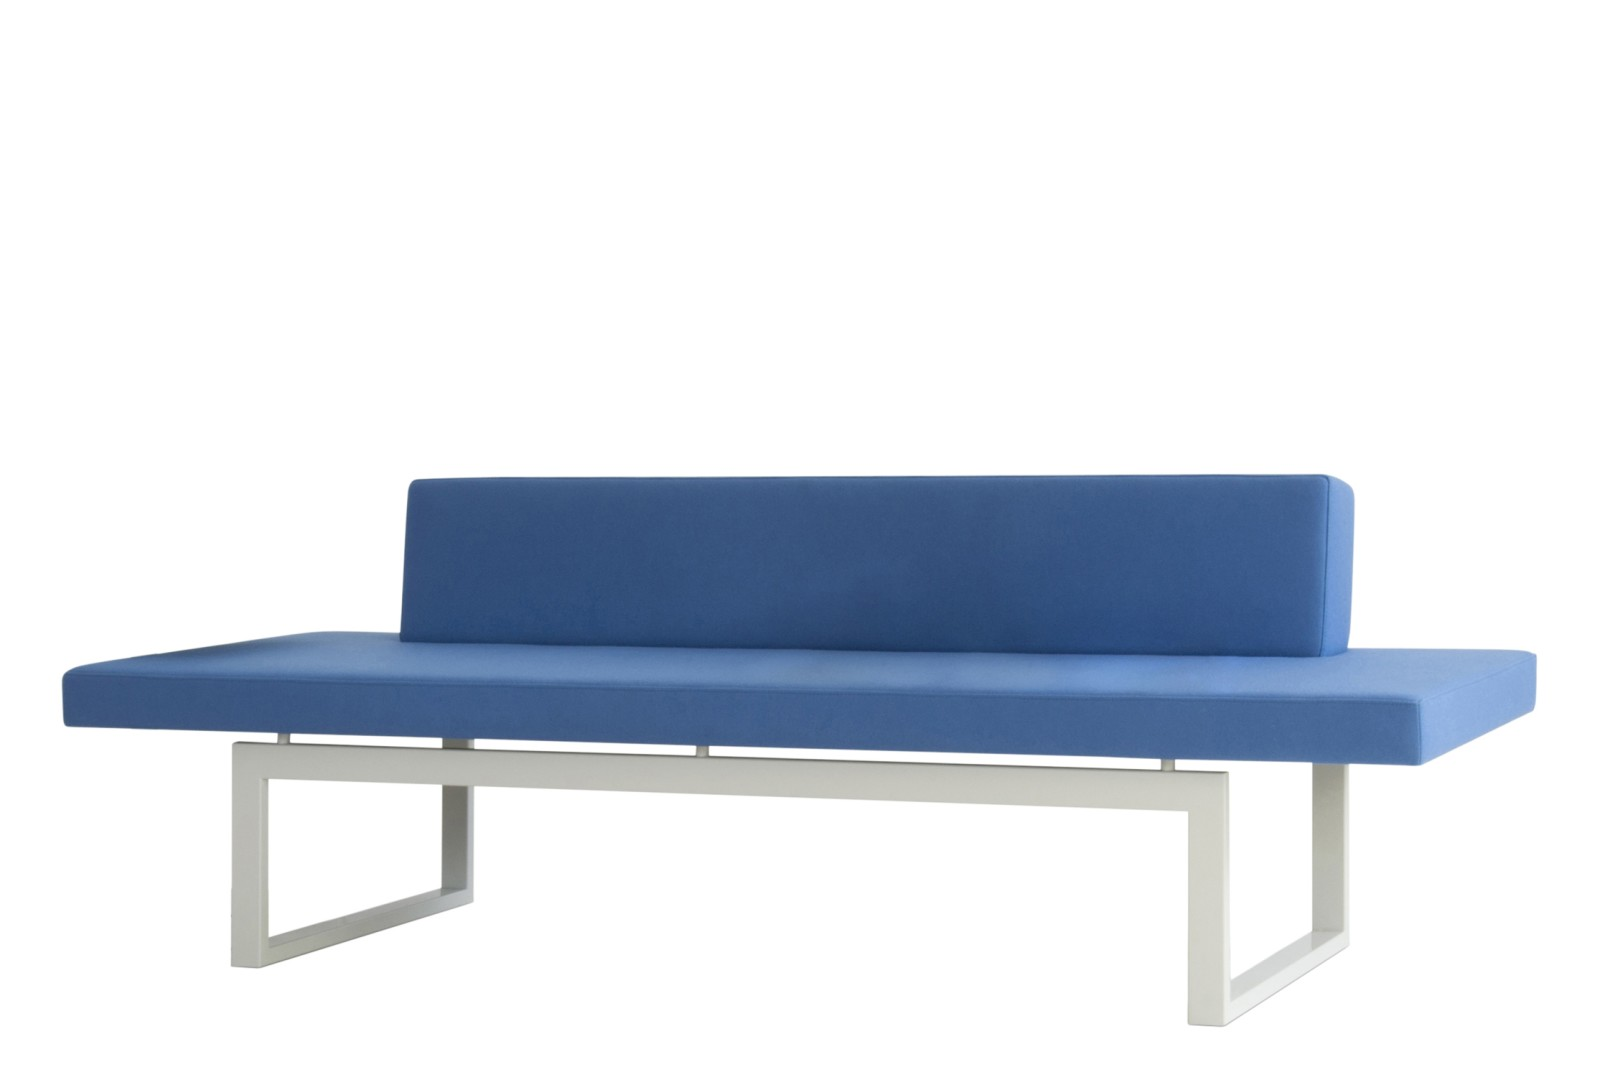 HM106H Quiet Seating Sofa Kvadrat Tonica 2 Oak Base